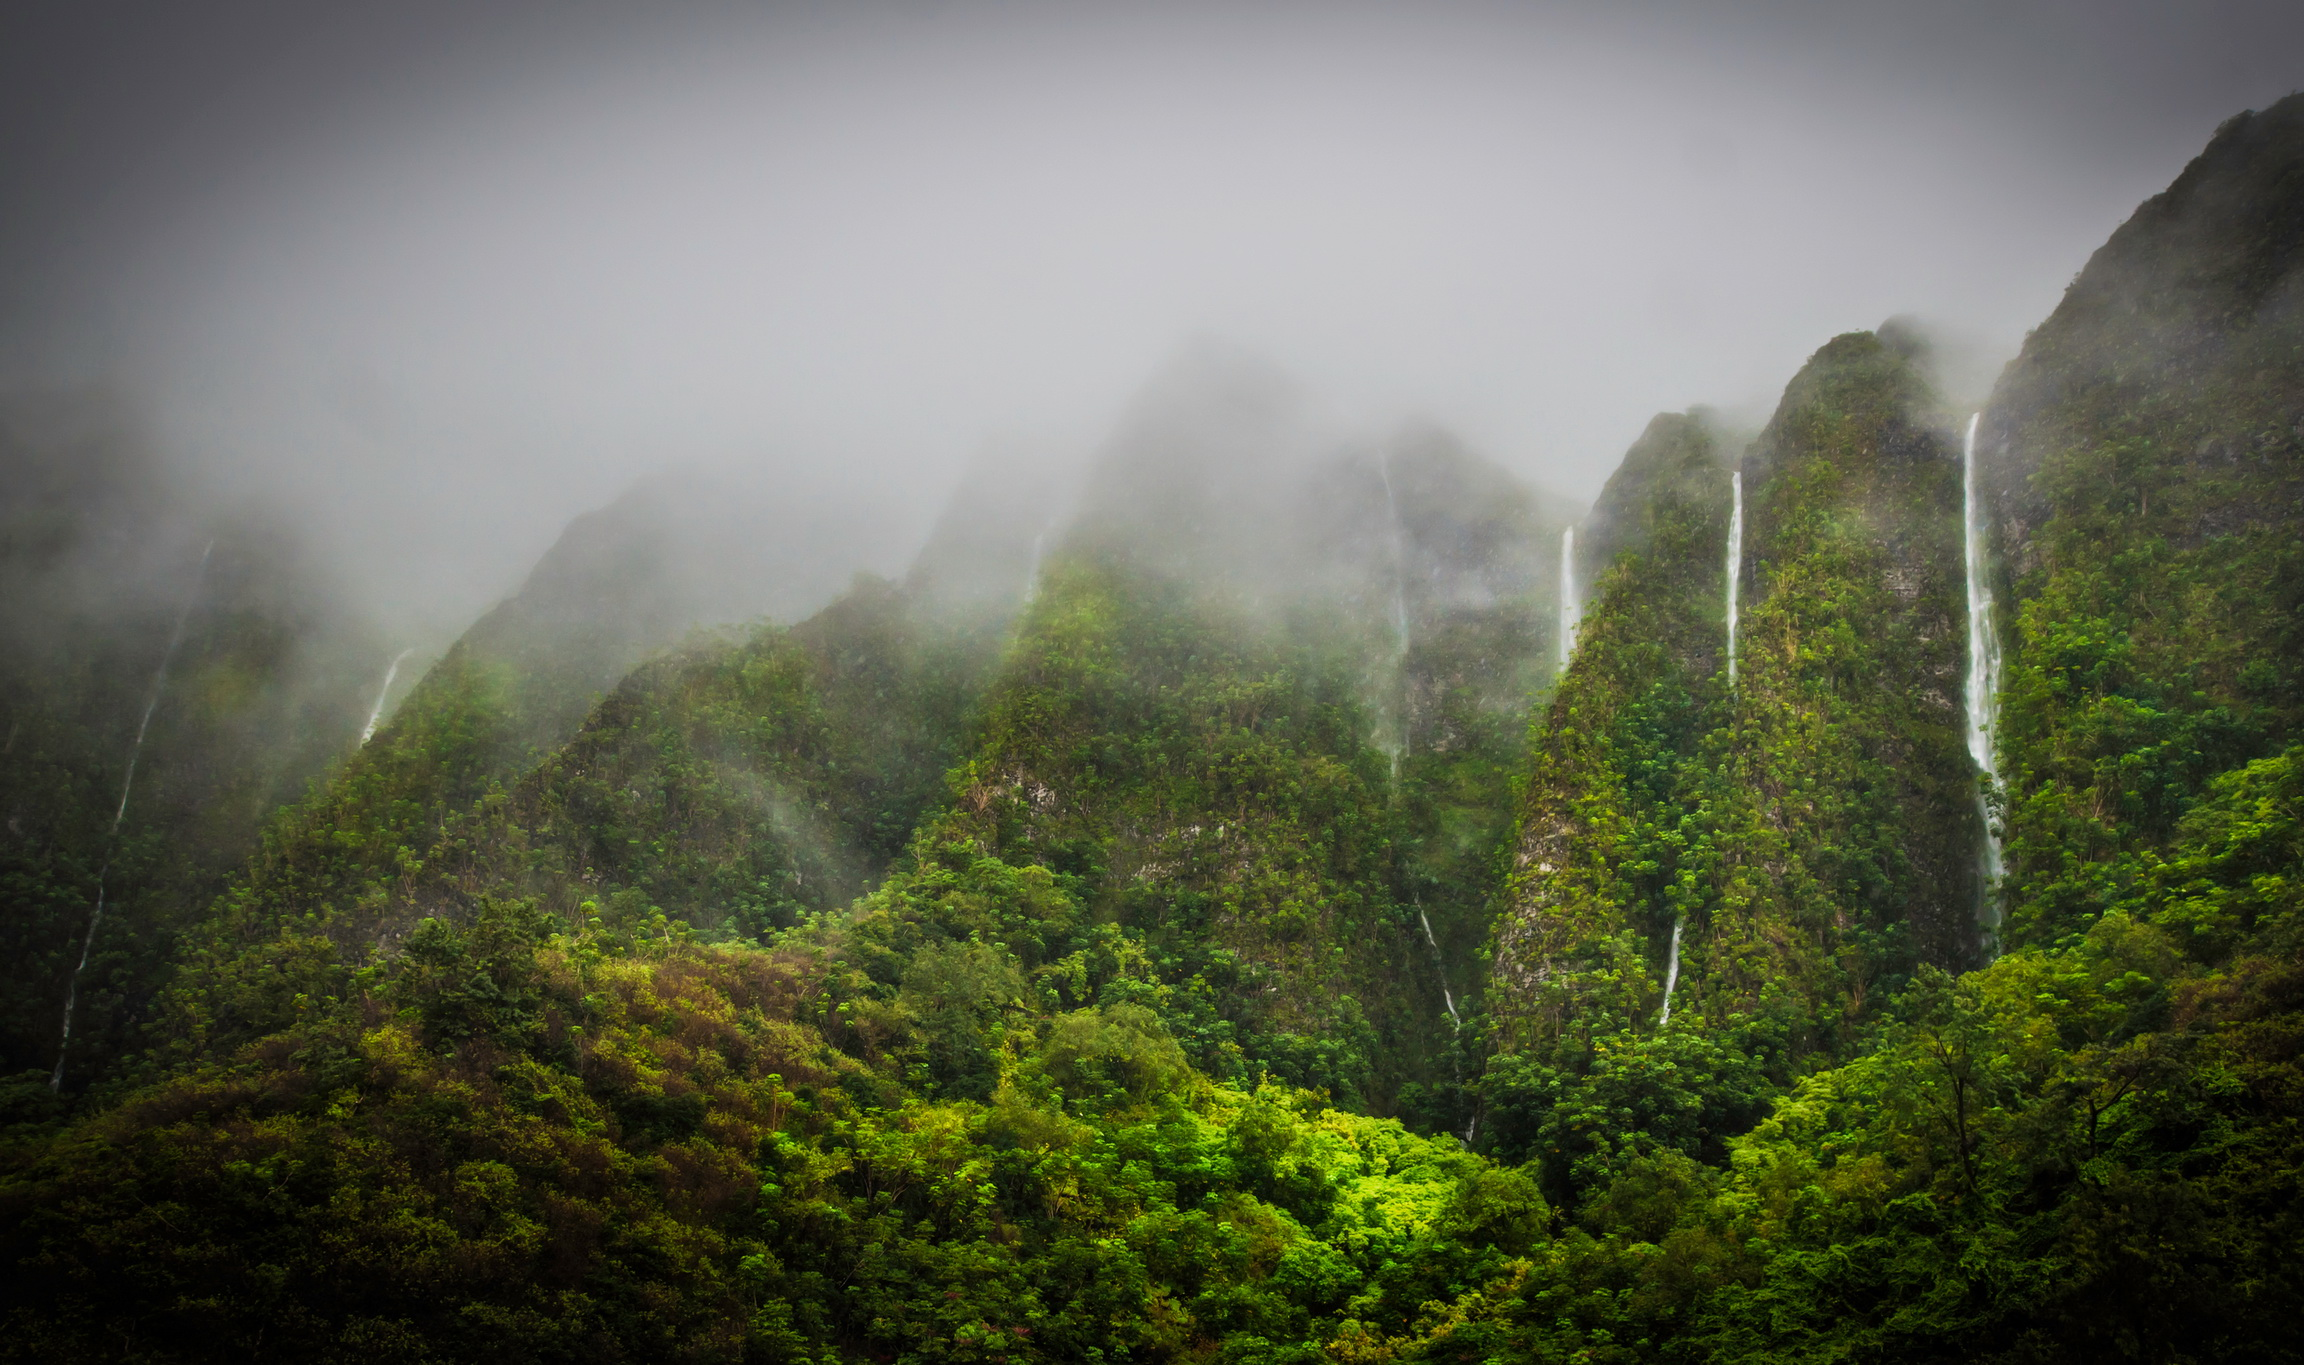 Highlands Oahu Hawaii wallpaper 2304x1365 46401 WallpaperUP 2304x1365